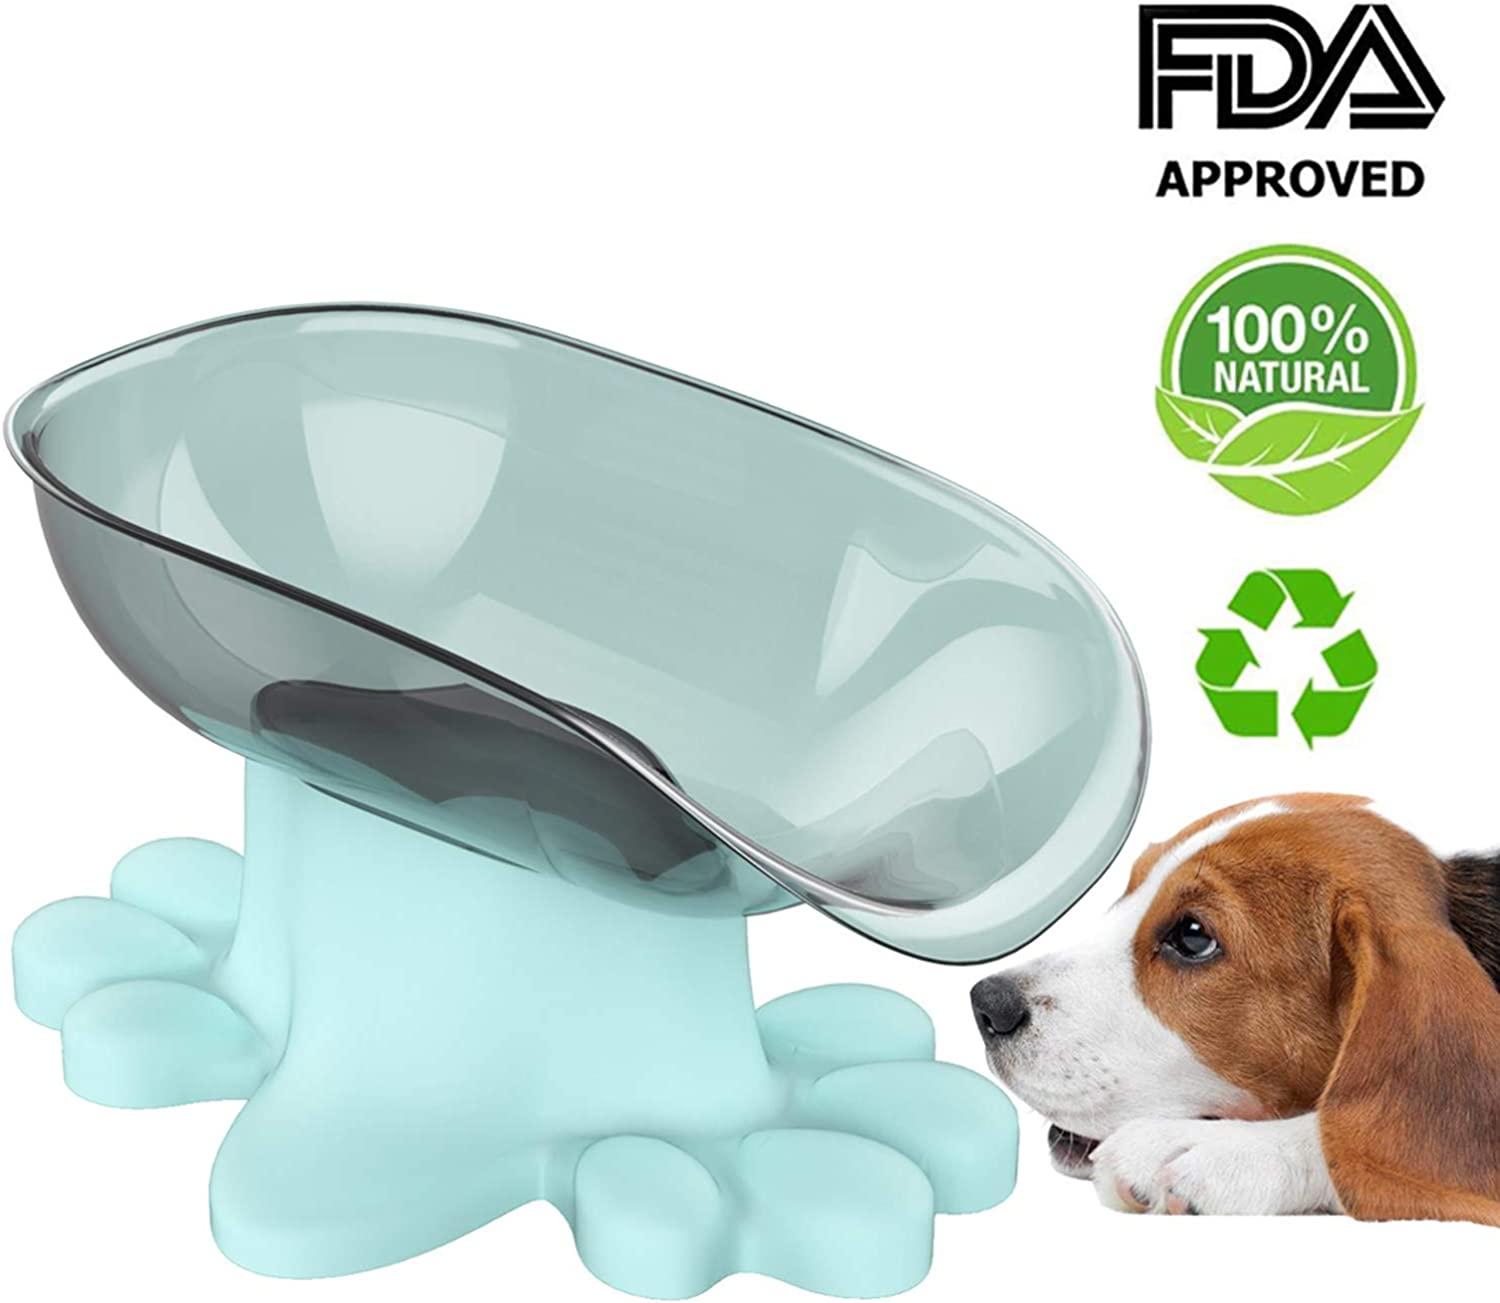 Large Dog Bowl Bule with 15 Degree tilt Predection Gums FDA Certified Environmental Health and Safety 7.28 inch Feeder